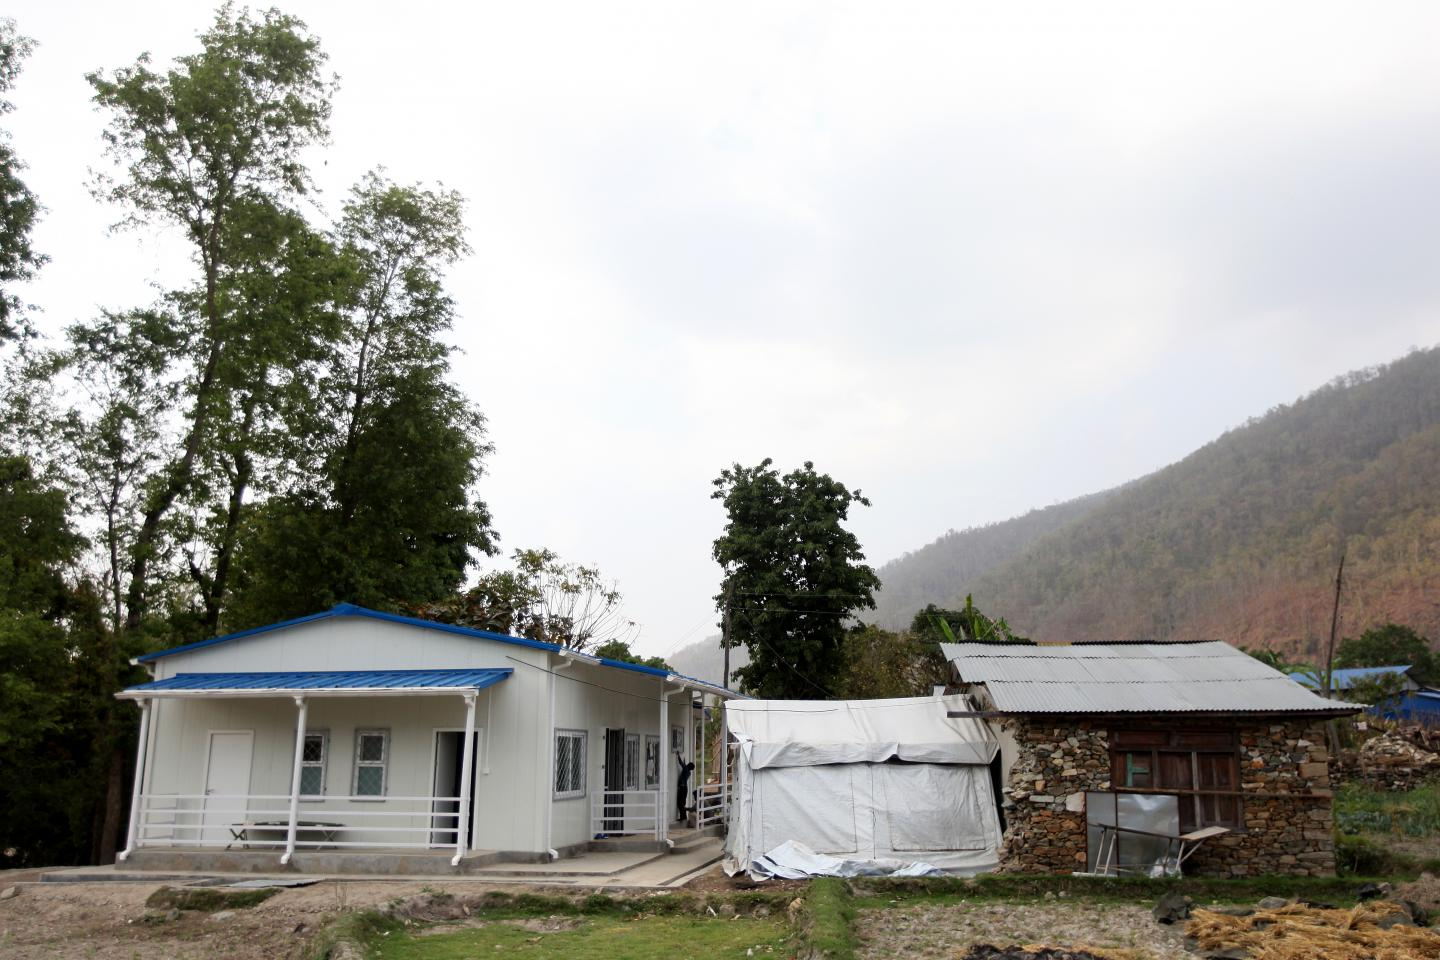 Unicef Nepal Paves Way To Build Back Better After Devastating Earthquakes Unicef Nepal See more ideas about nepal earthquake, earthquake, nepal. unicef nepal paves way to build back